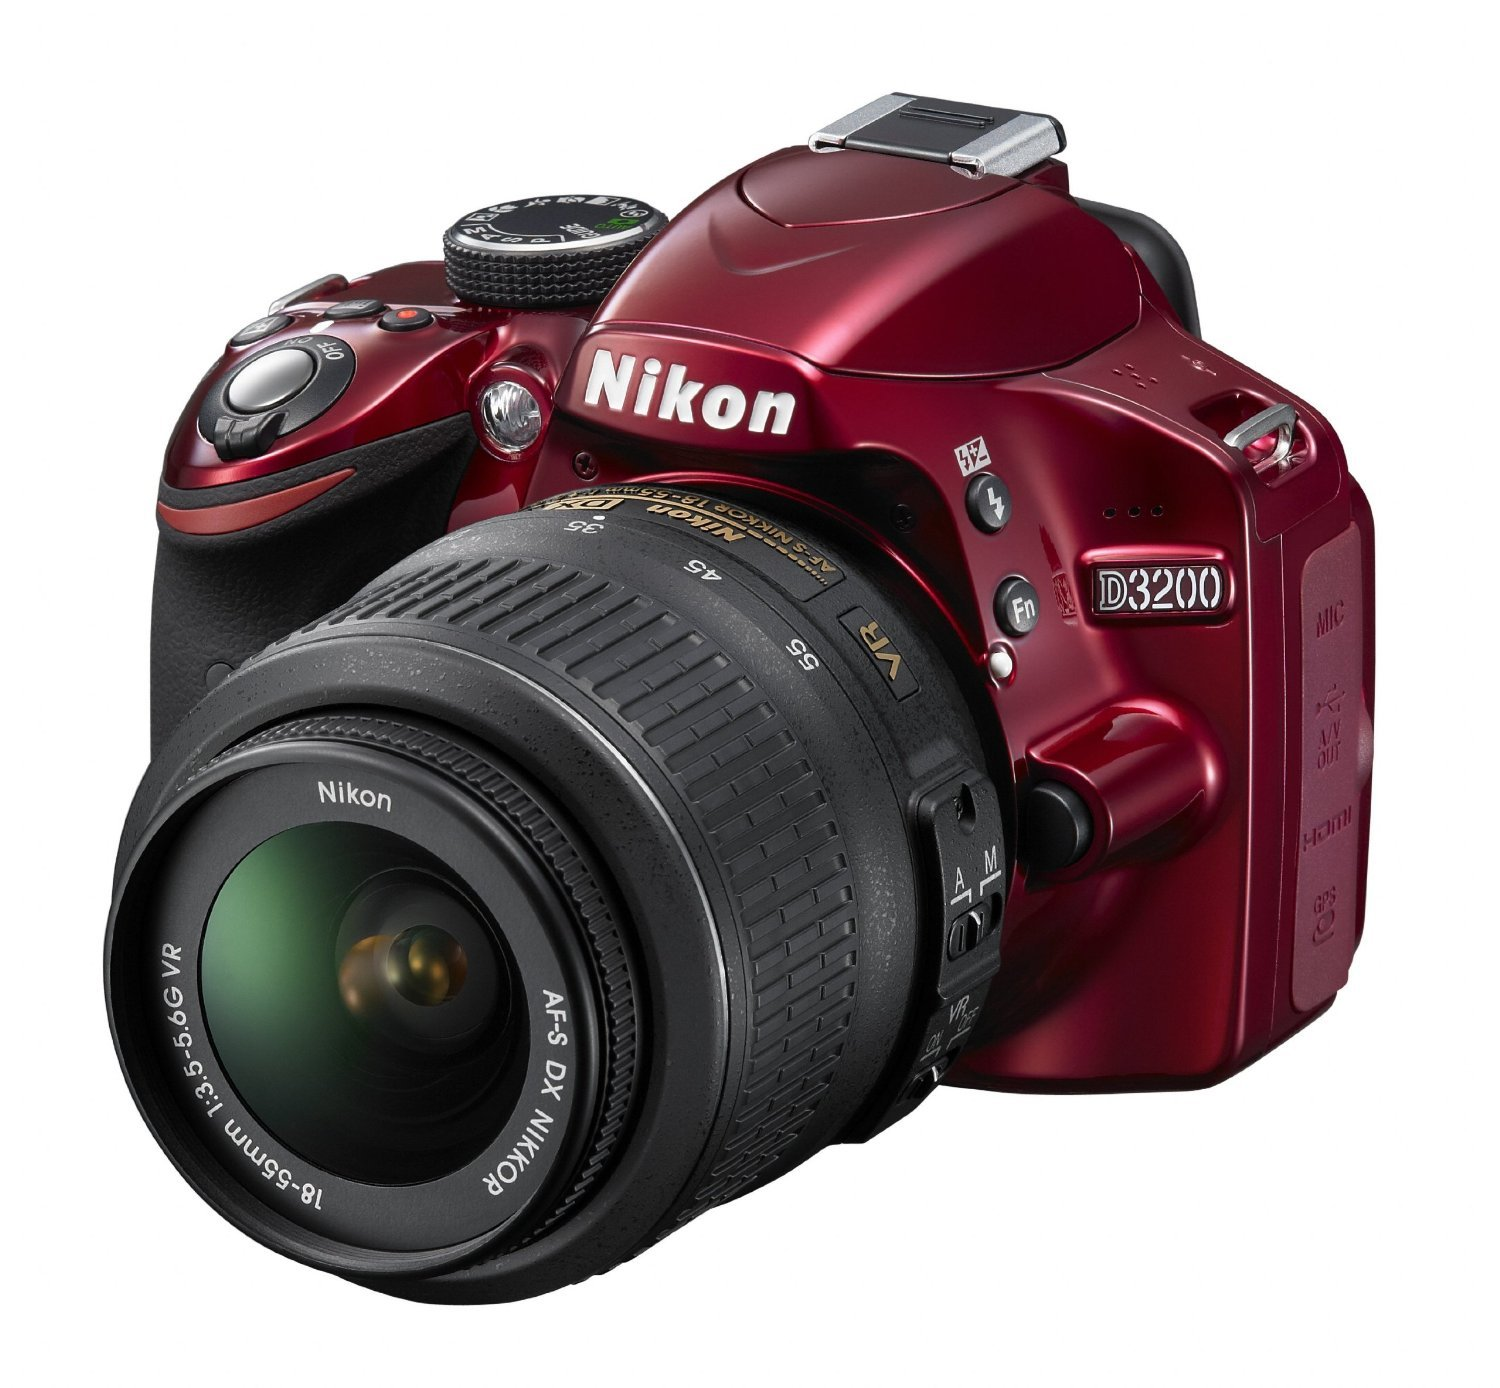 Nikon D3200 Digital SLR Camera & 18-55mm VR Zoom Lens (Red) - Certified Refurbished